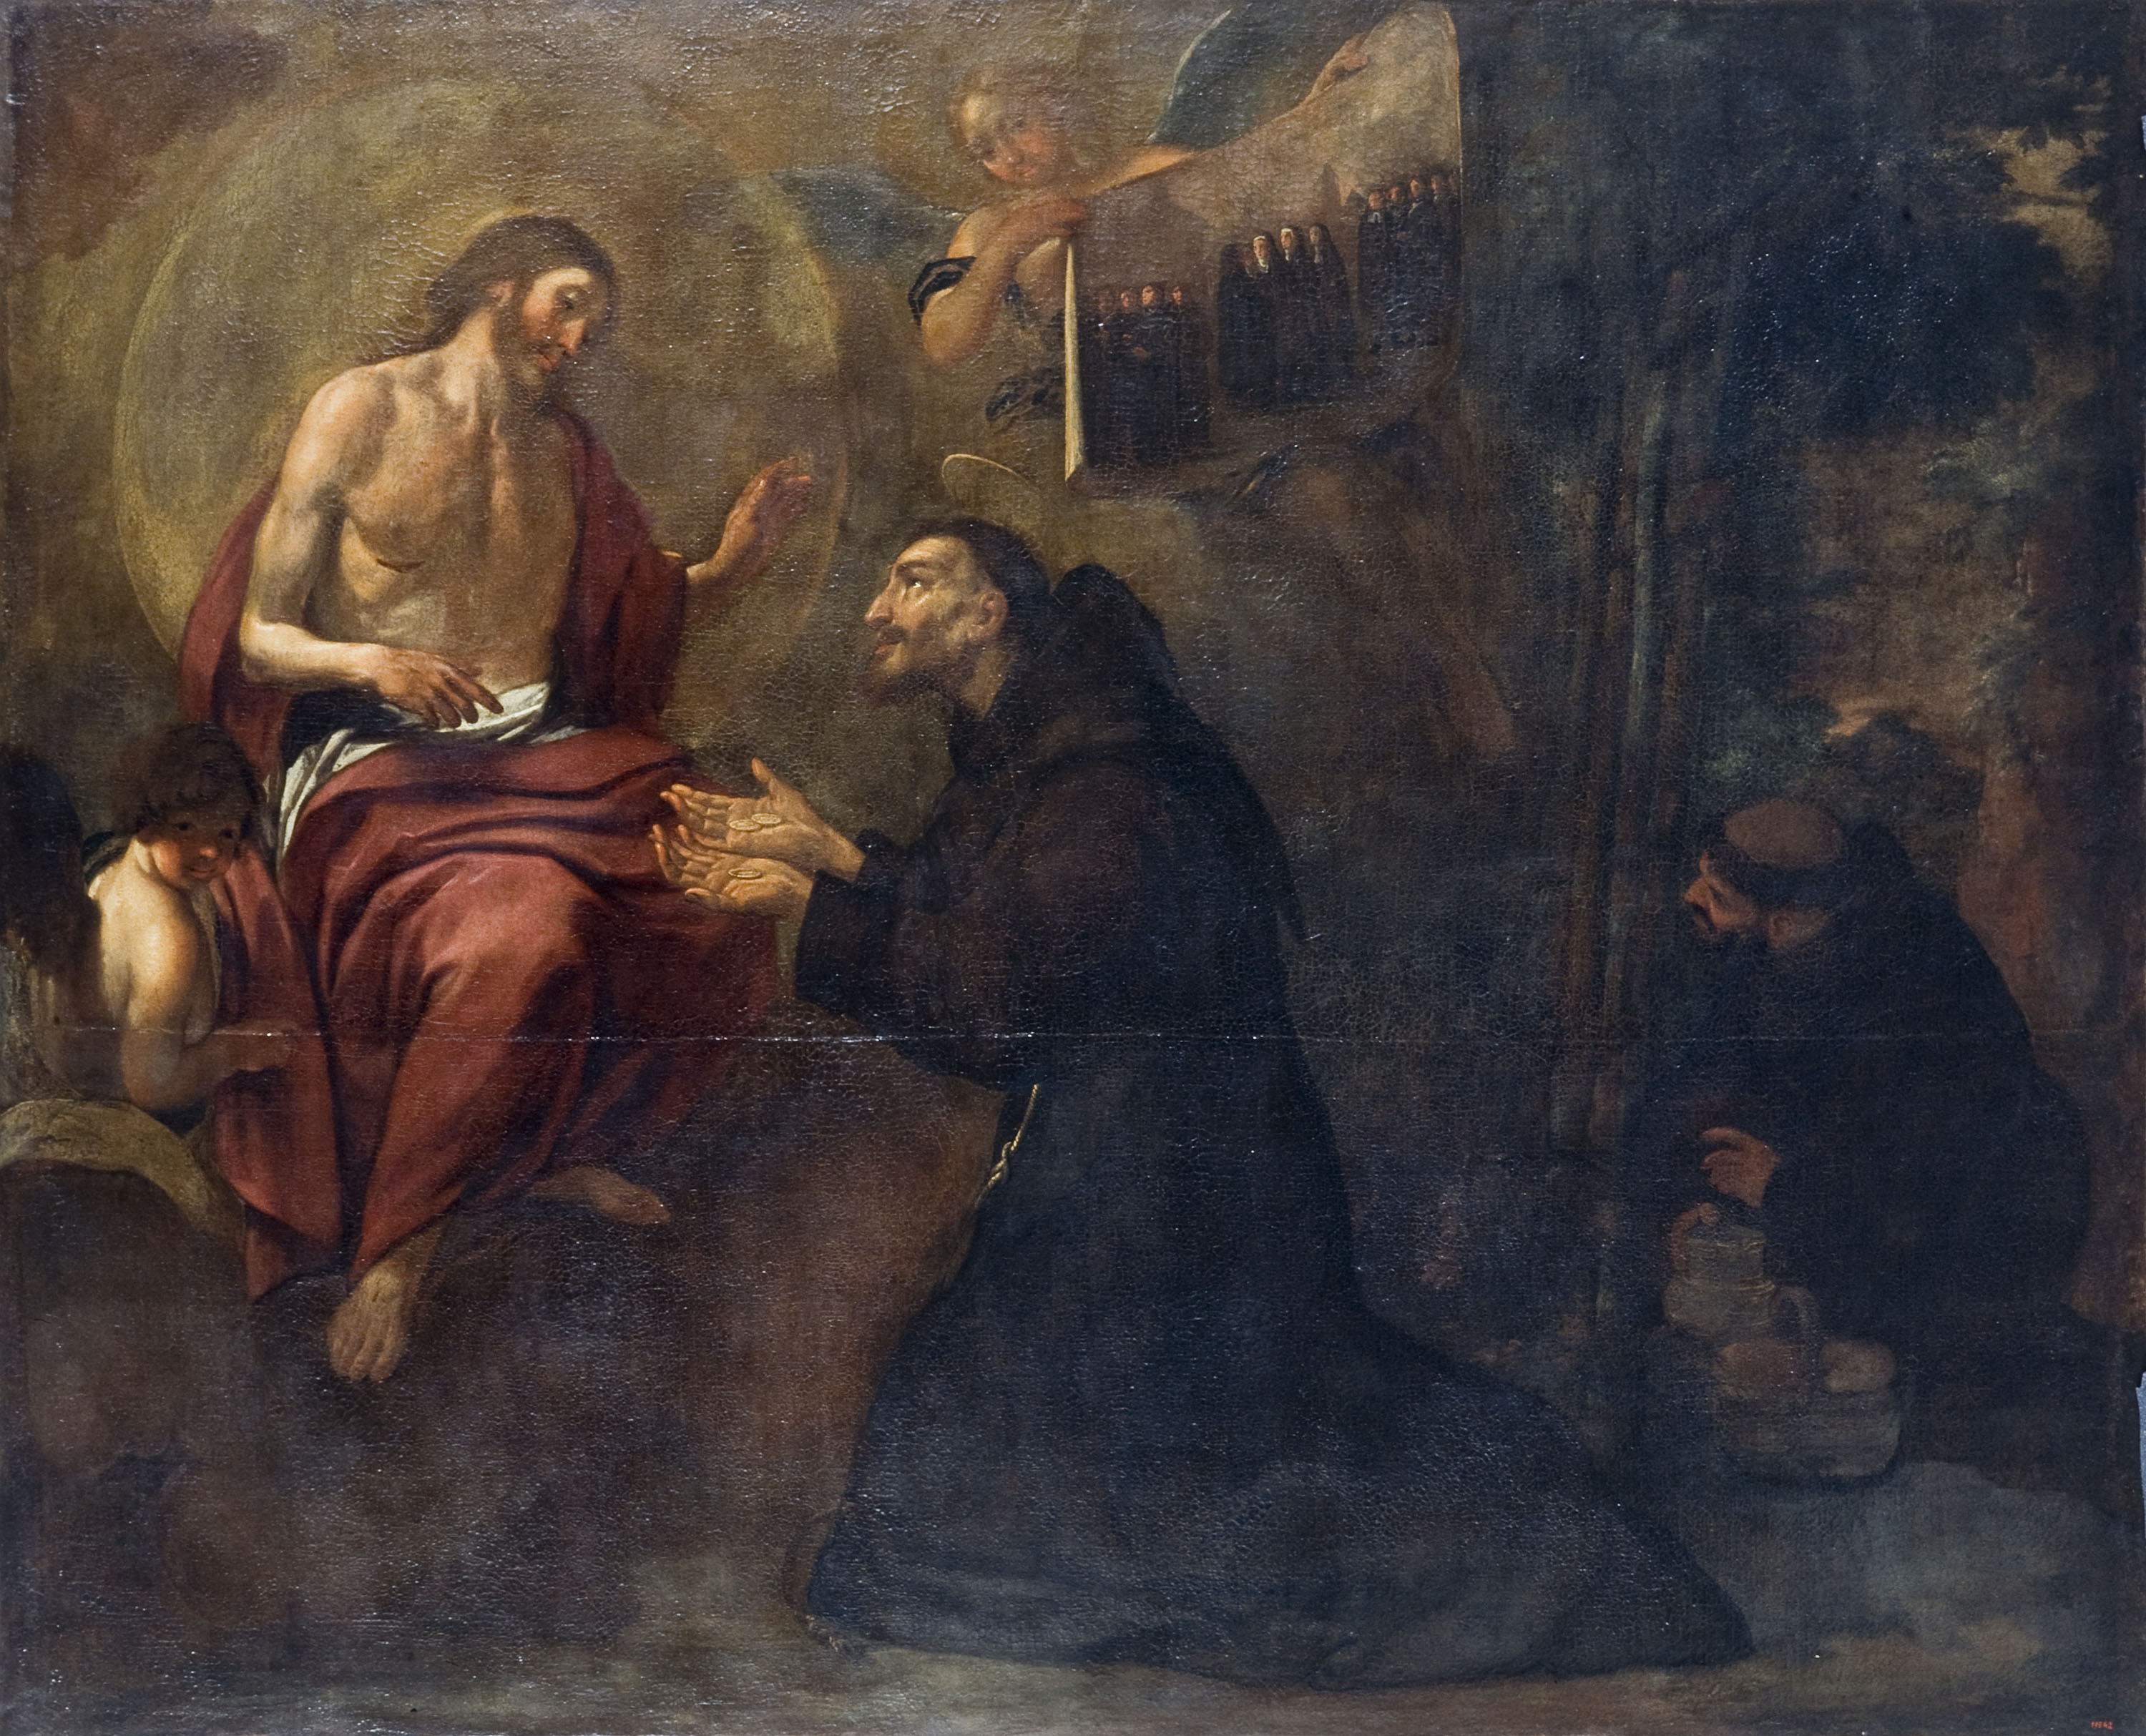 Saint Francis Gives Three Coins to Jesus, Symbol of the